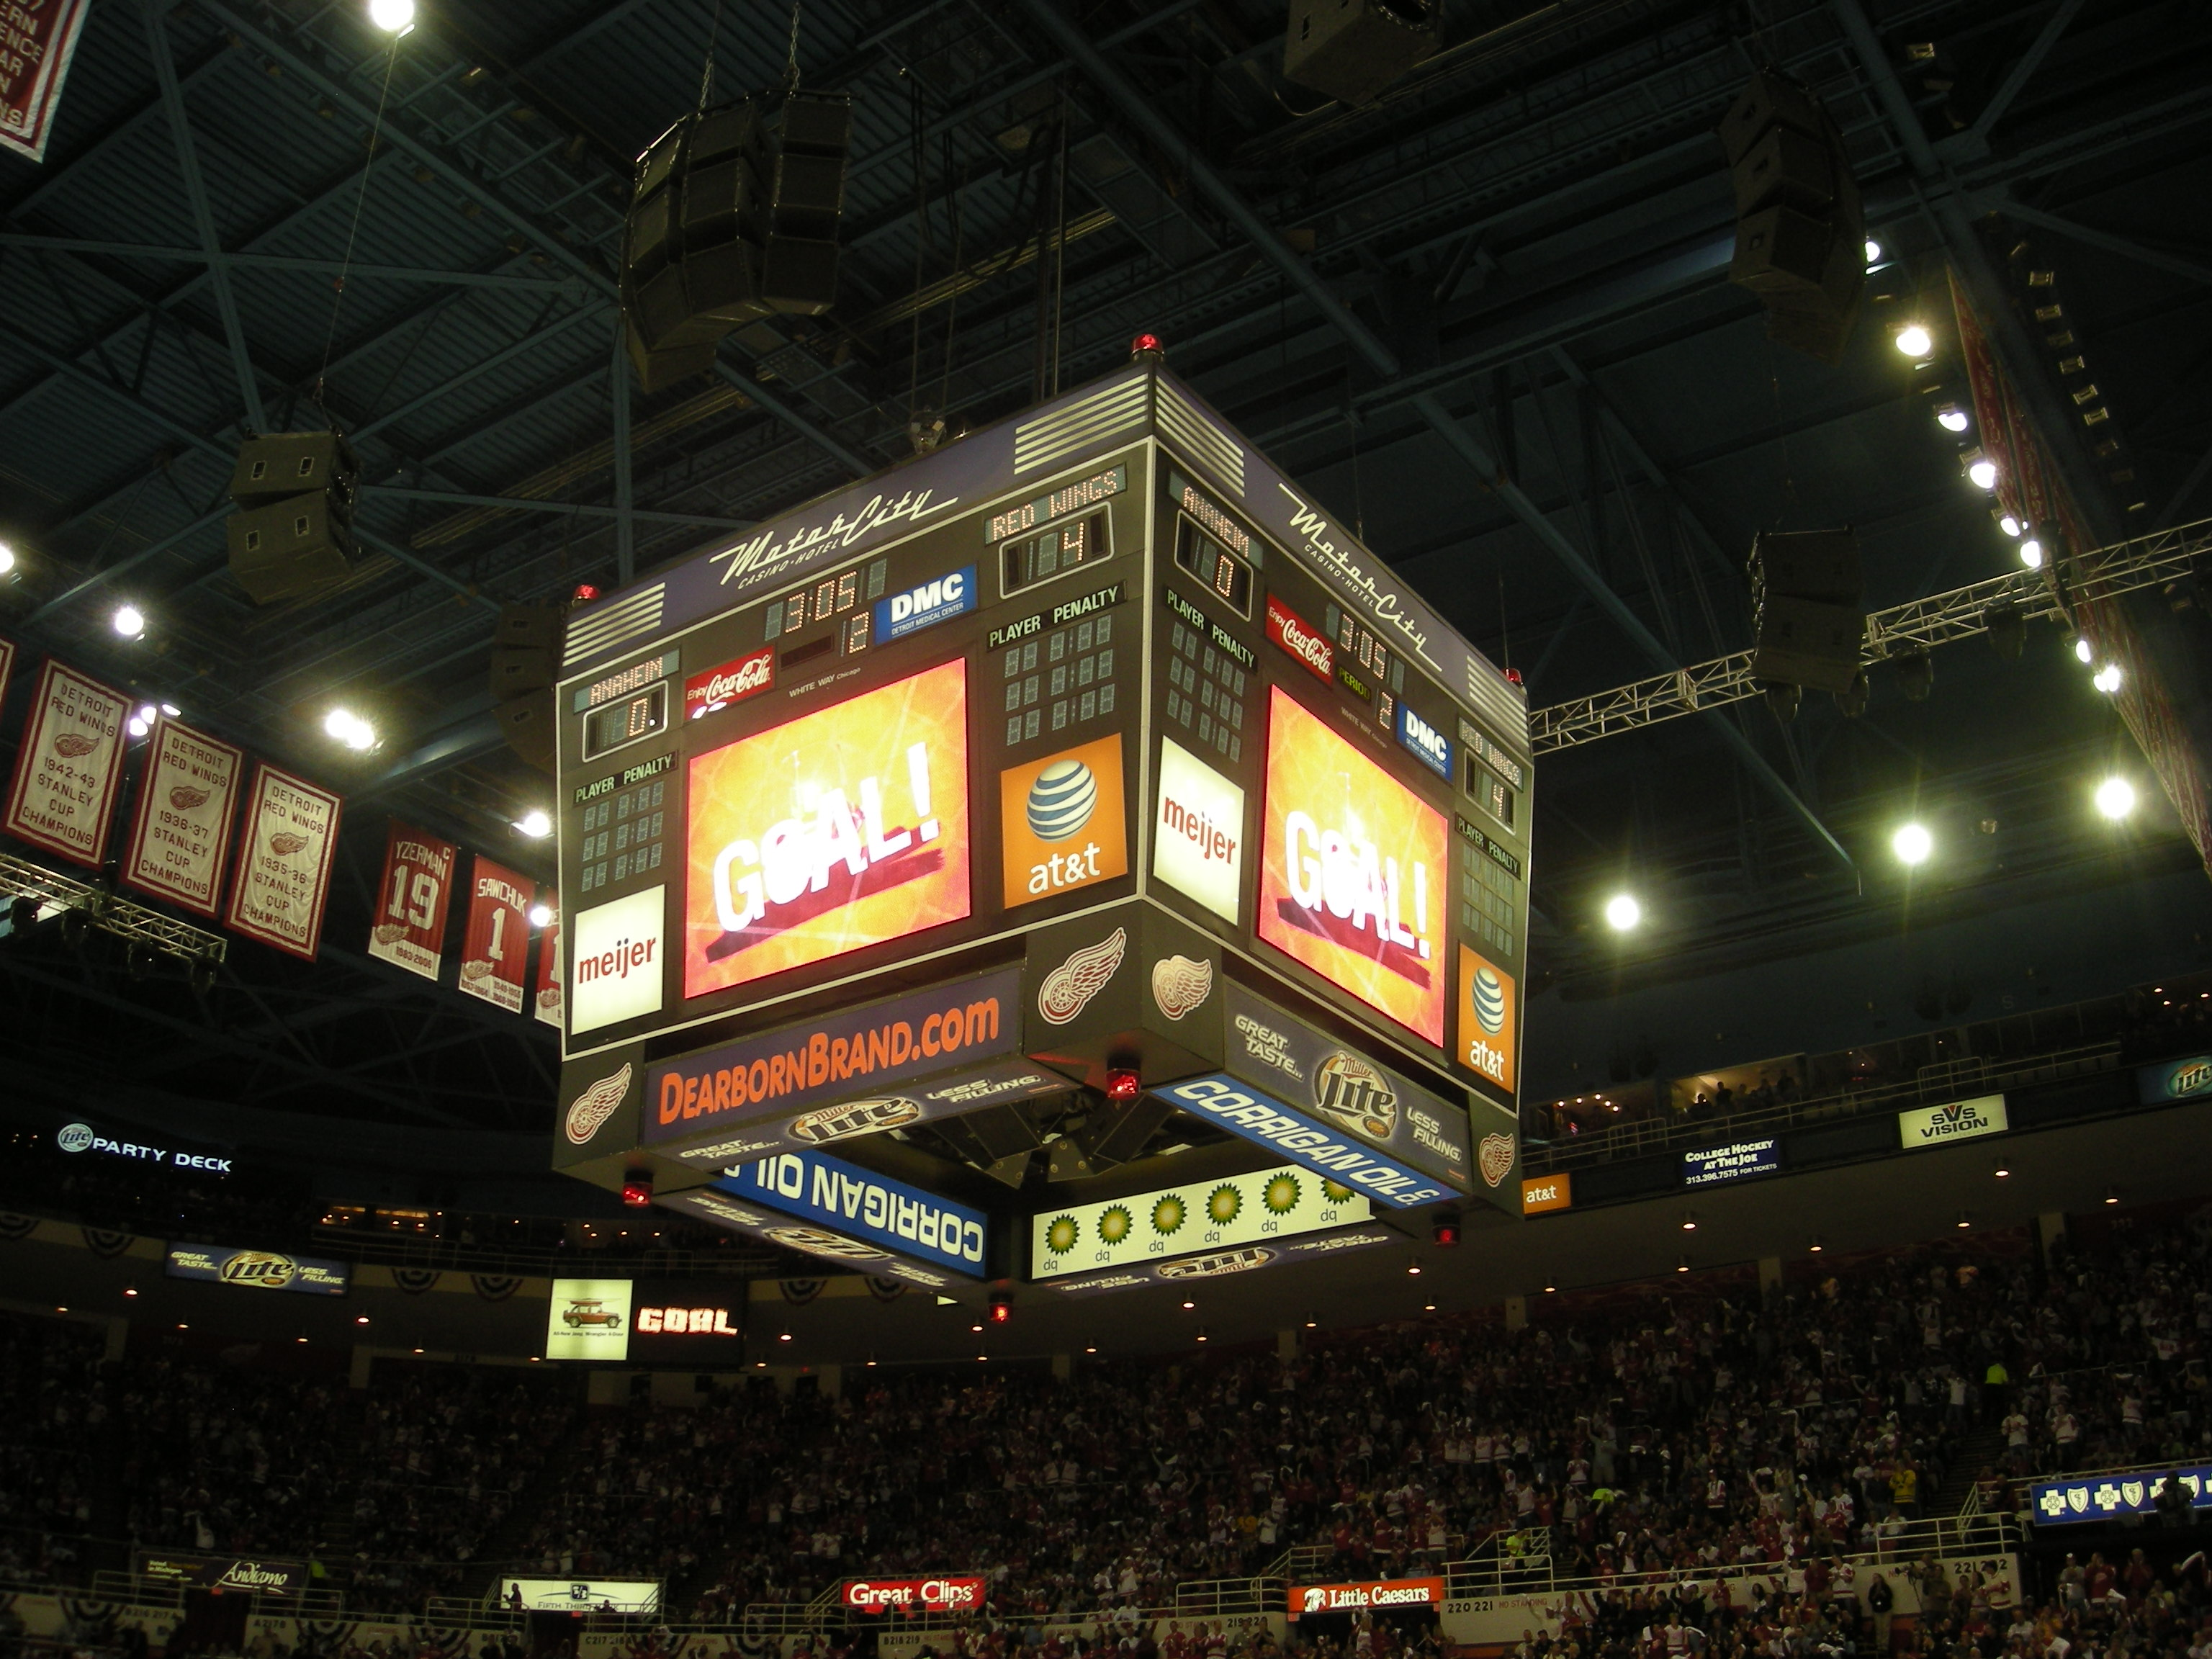 Detroit Red Wings Arena >> File:Anaheim Ducks vs. Detroit Red Wings Oct 8, 2010 47.JPG - Wikimedia Commons